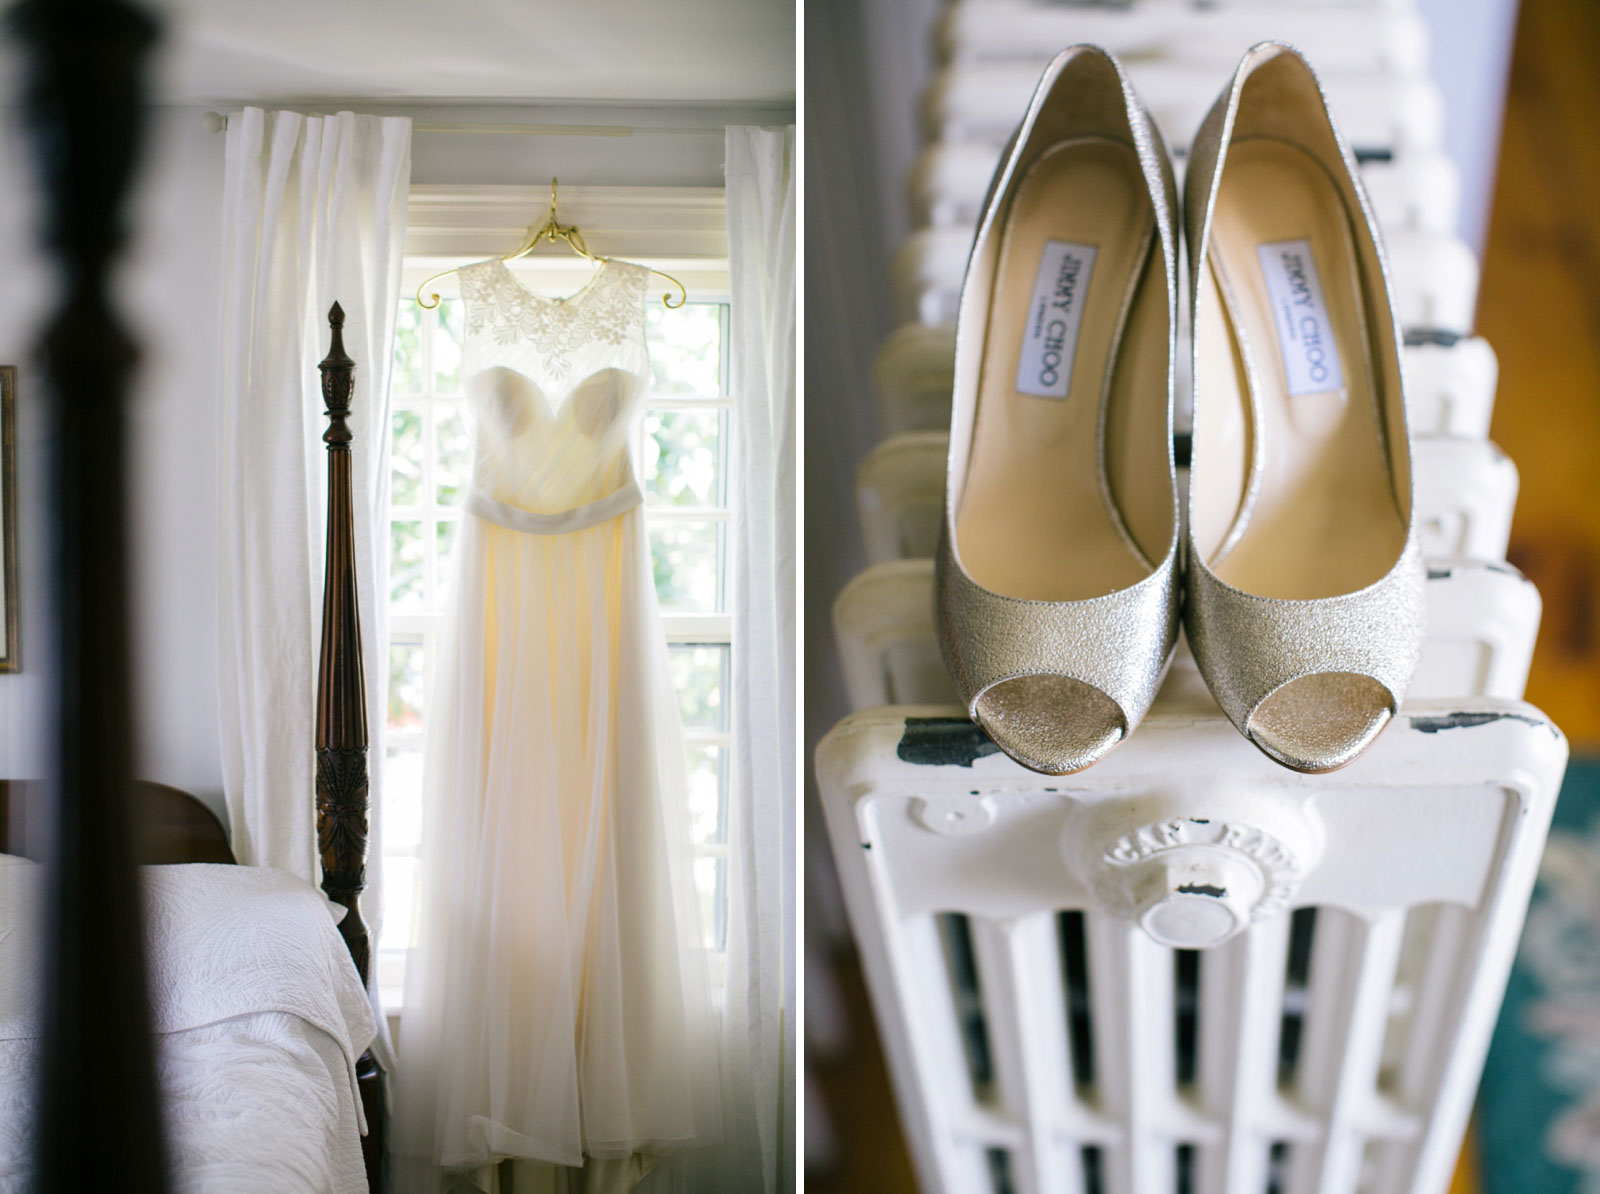 Detail of wedding dress hanging in window and bride's gold shoes in natural ethereal light.